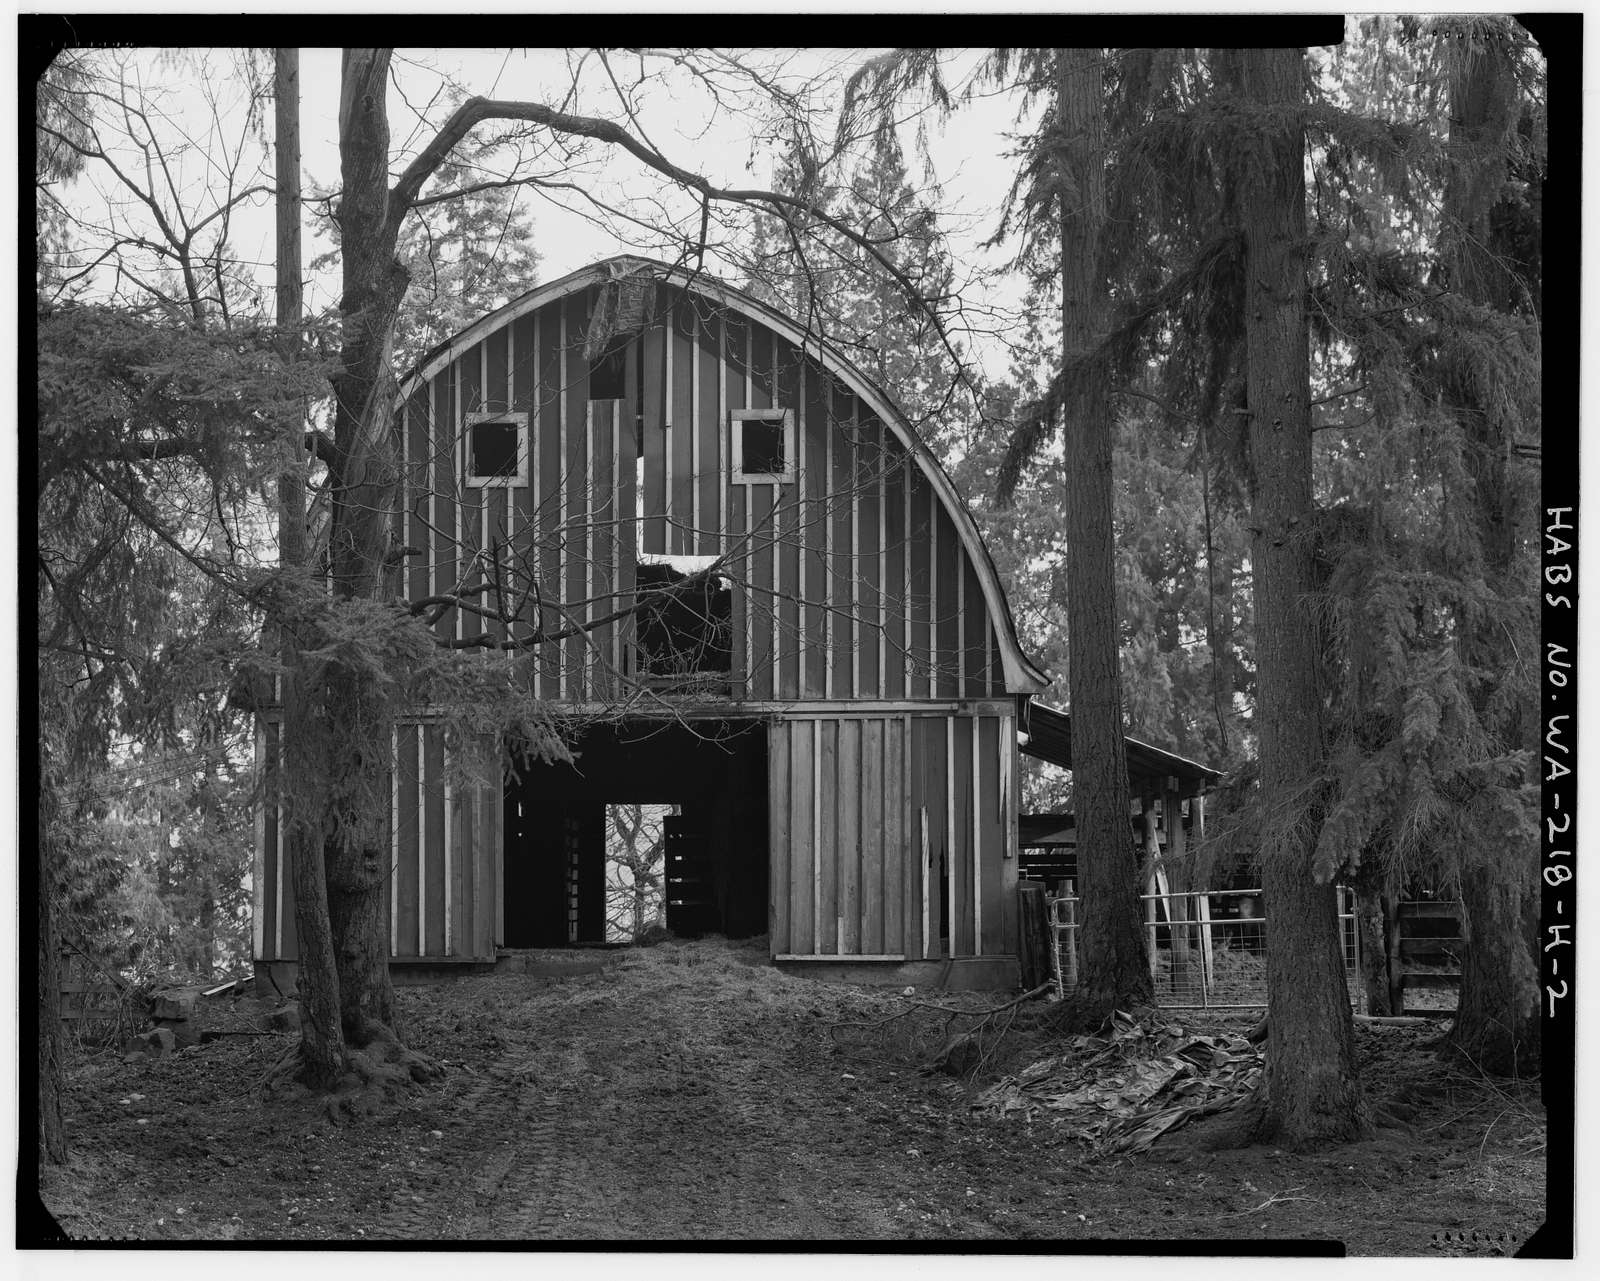 Boone-Truly Ranch, Horse Barn, 11119 Northeast 185th Street, Bothell, King County, WA